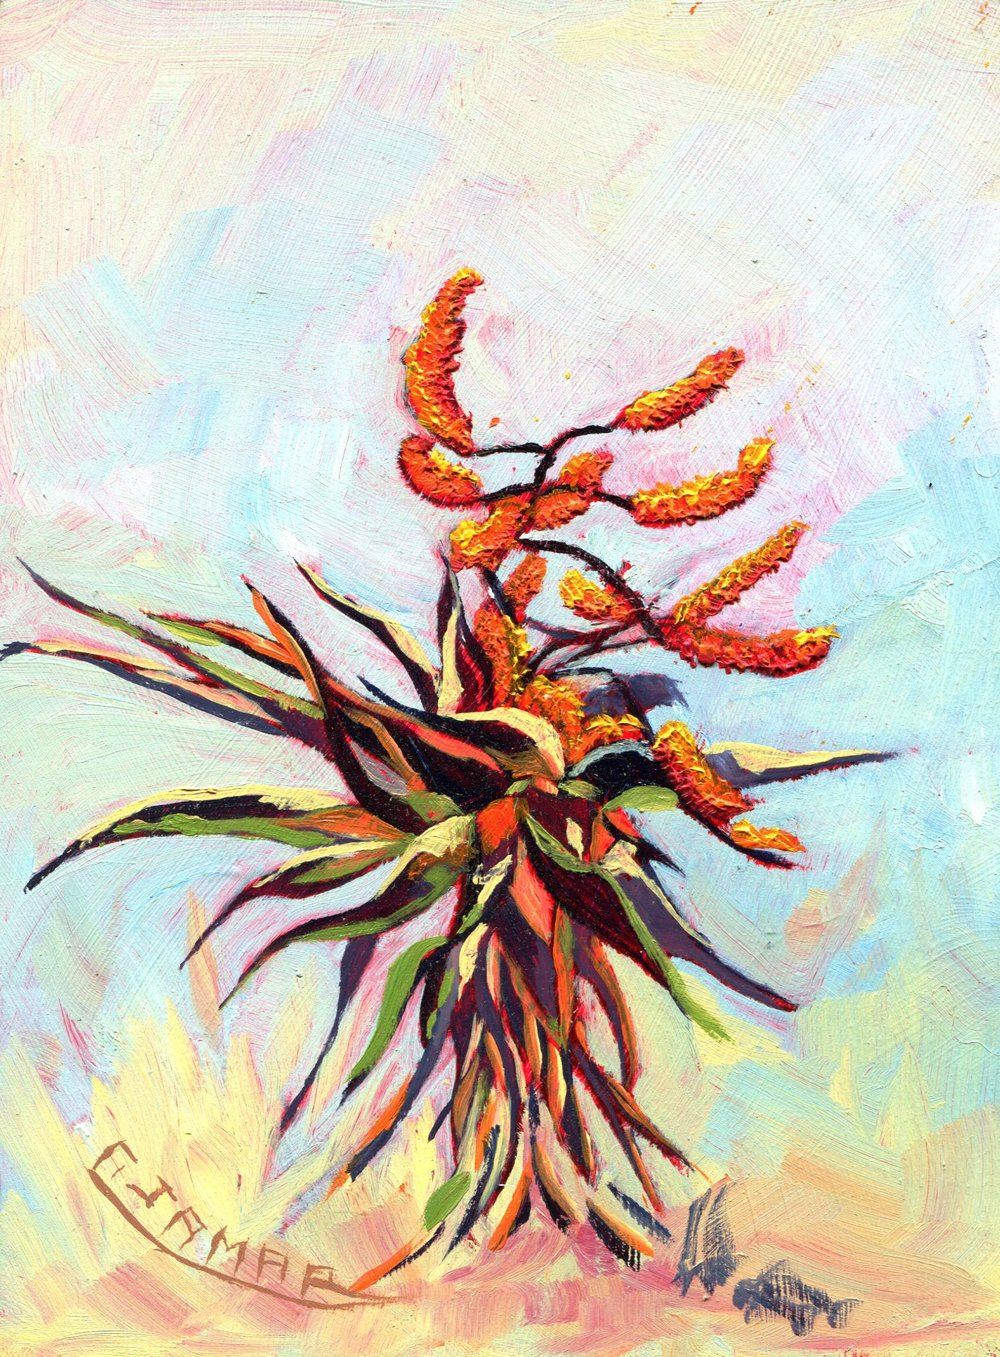 42B CHRISTIANE VARNEY JAMAR, ALOES, OIL ON SUPAWOOD